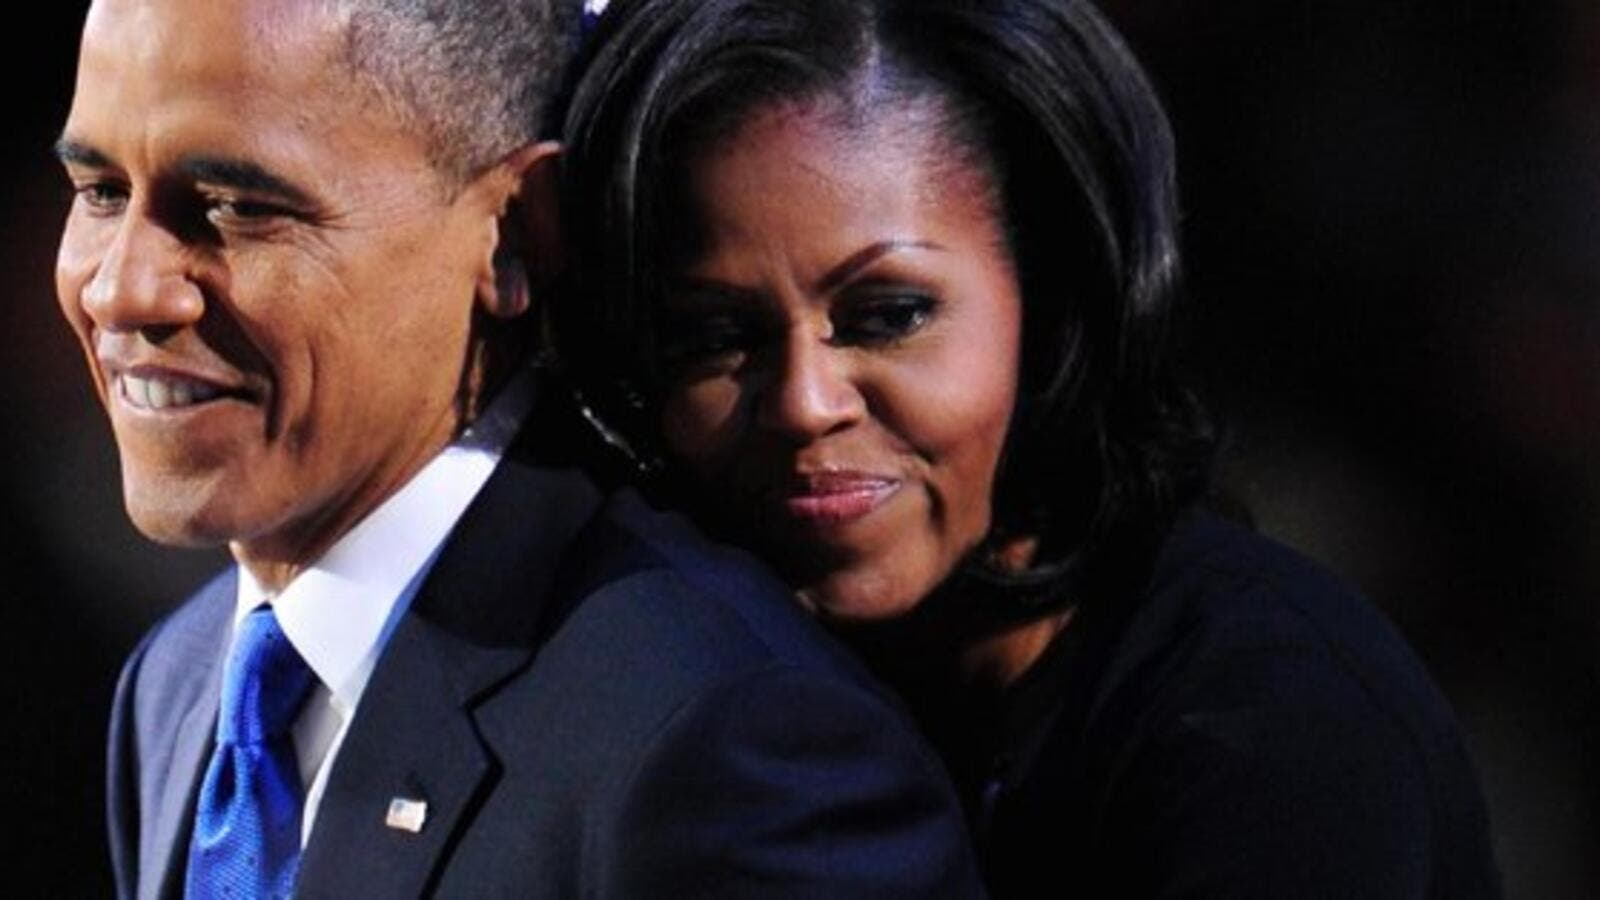 Barack Obama and Michelle Obama (Twitter)